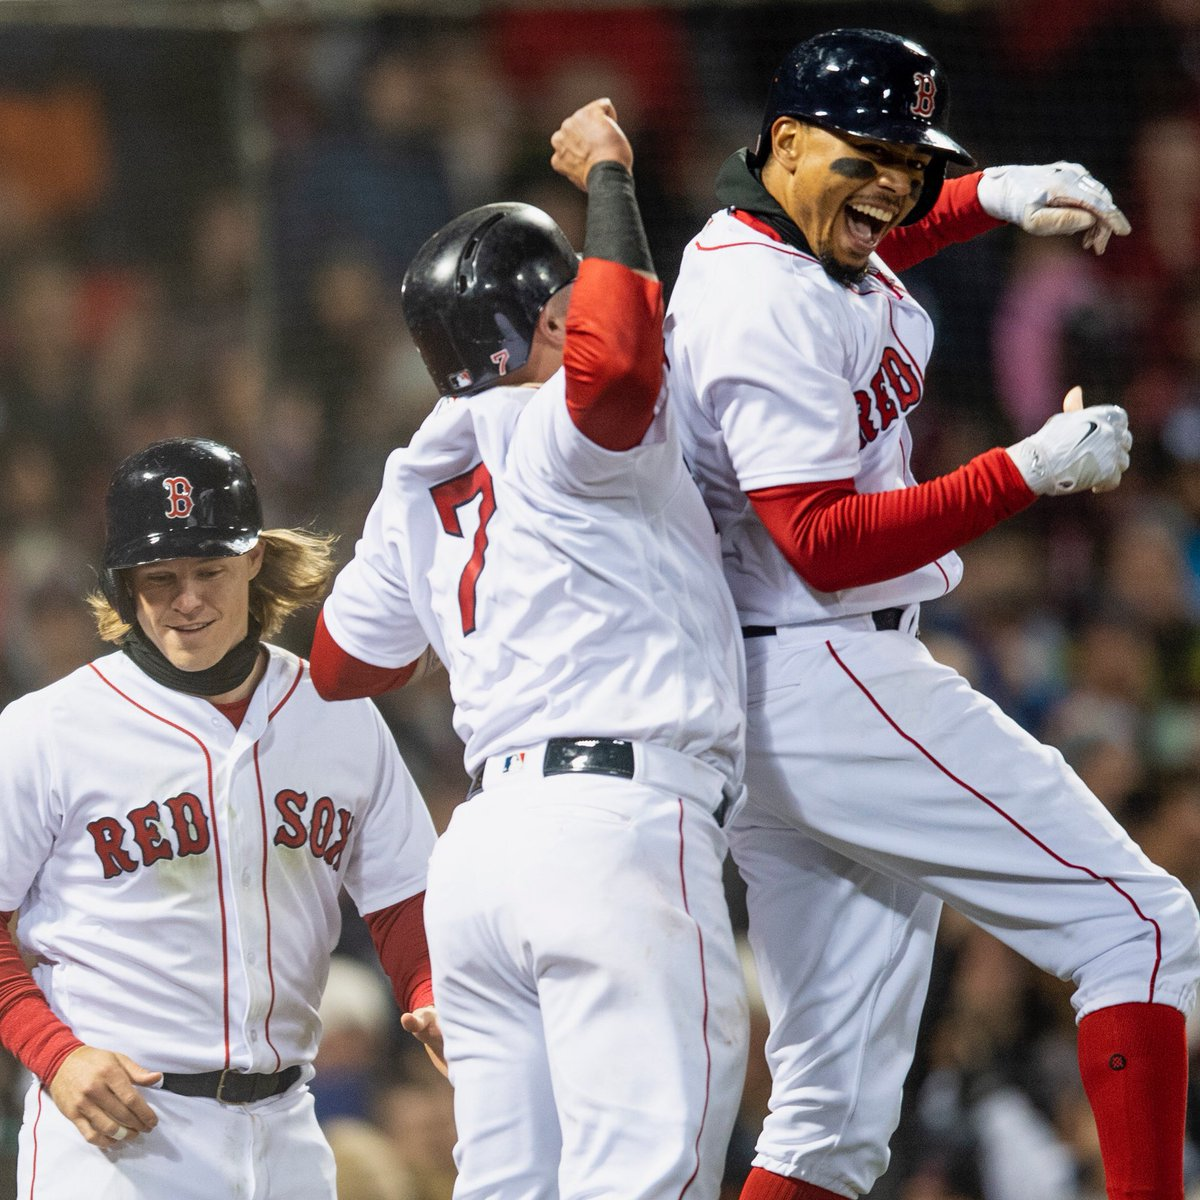 RECAP: In Their First Meeting of the Season, the #RedSox Blew out the New York Yankees.